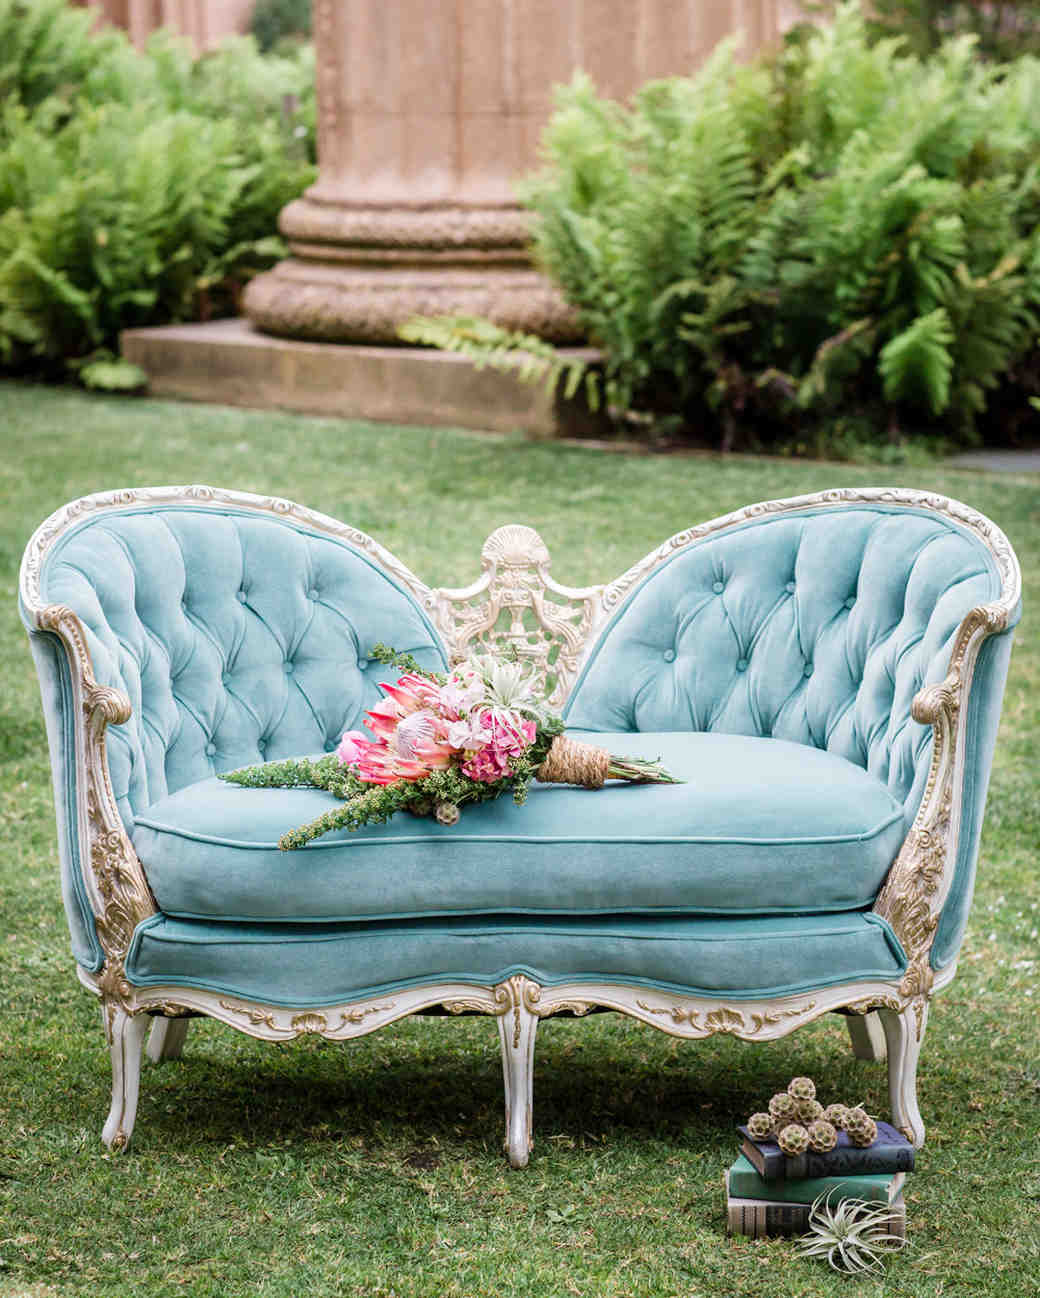 blue velvet chaise lounge on lawn